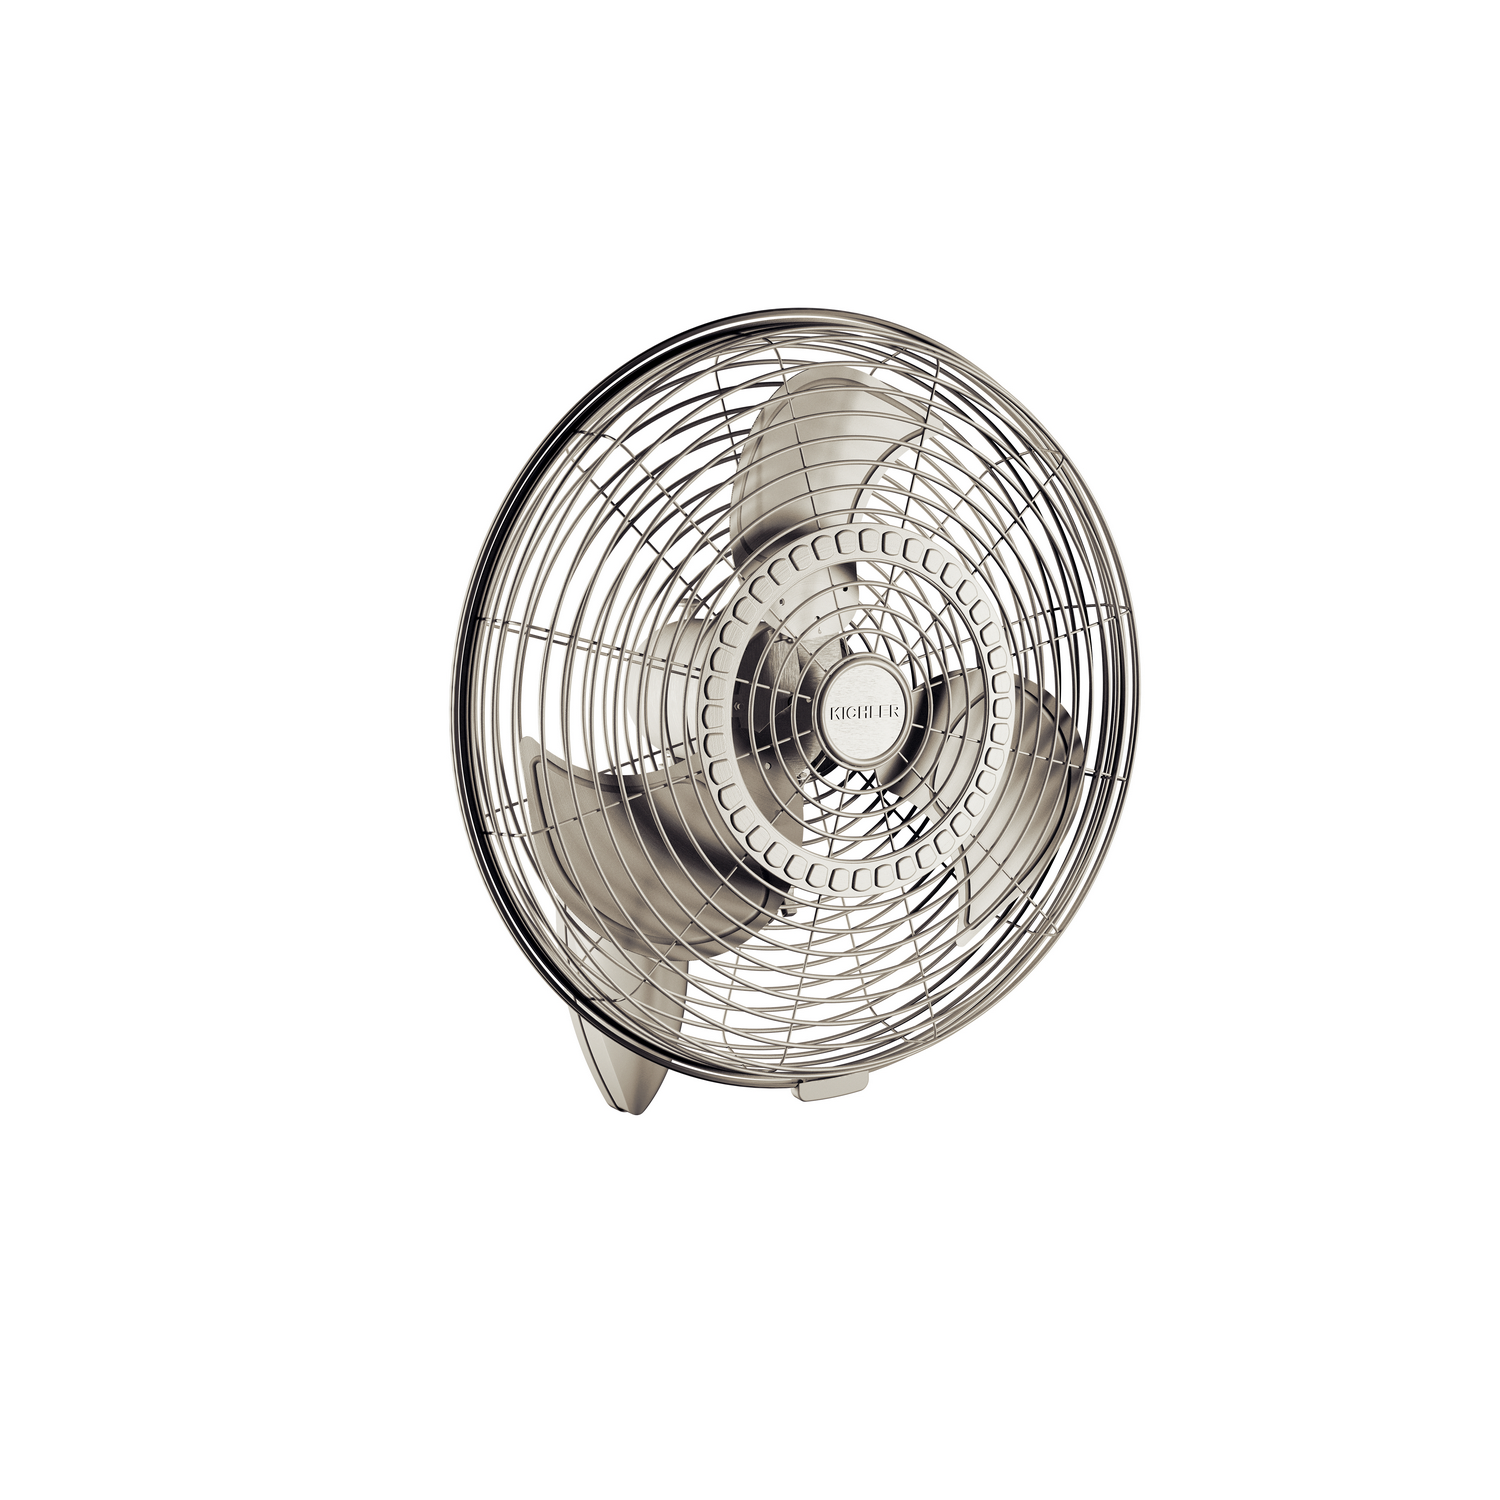 24 inchCeiling Fan from the Pola collection by Kichler 339224NI